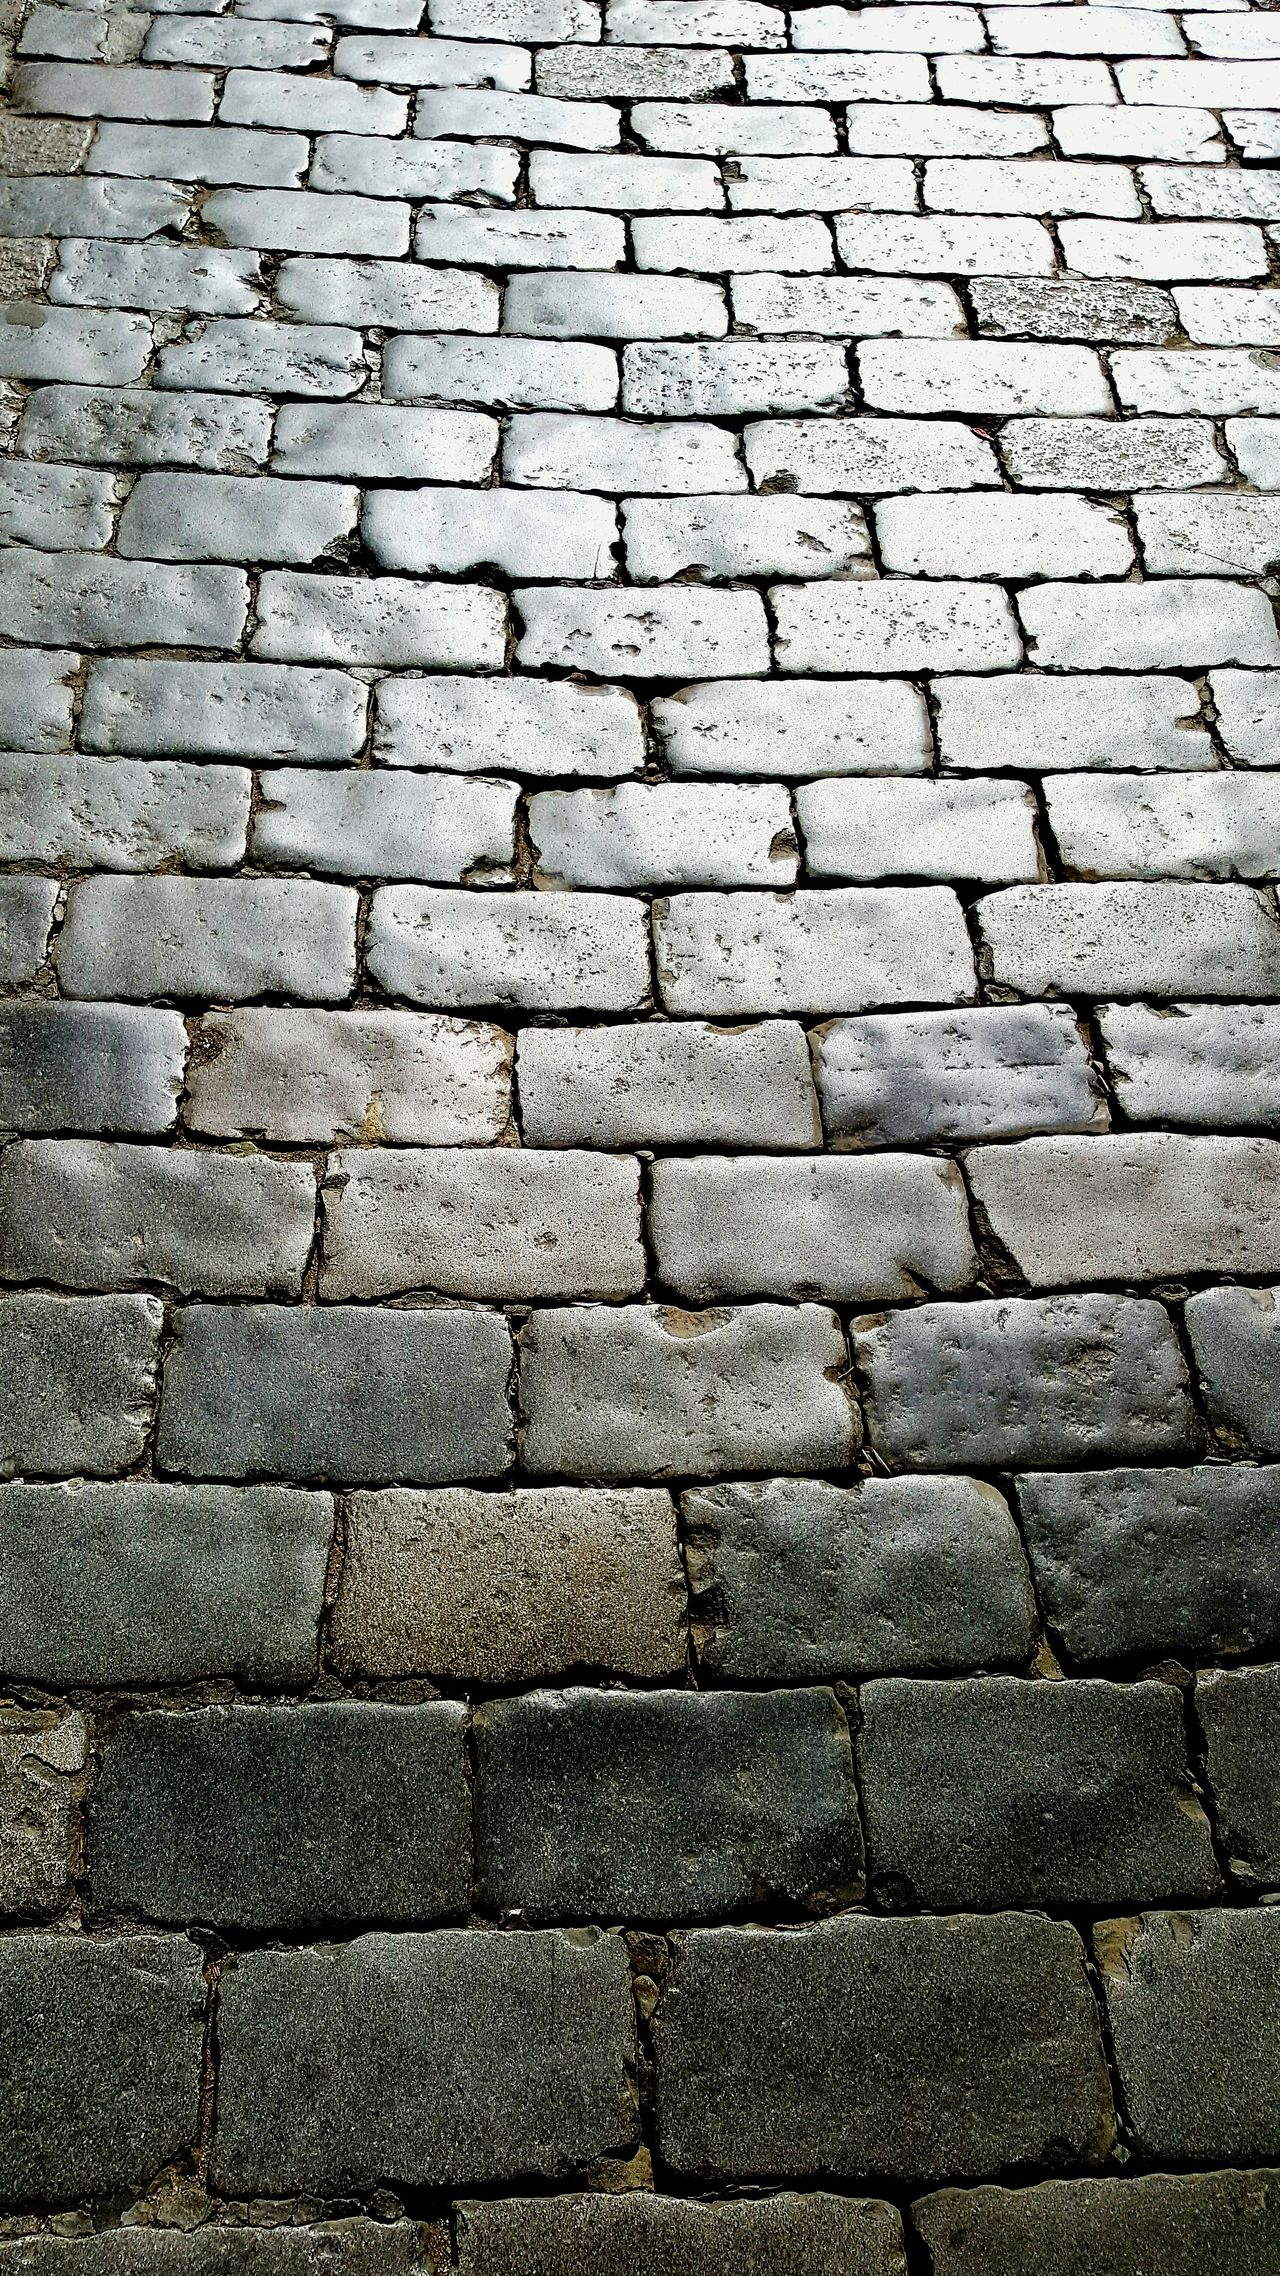 Pattern Day No People Close-up Brick Road Cobblestone Polished Polished Surface Street Photography Road Old Road